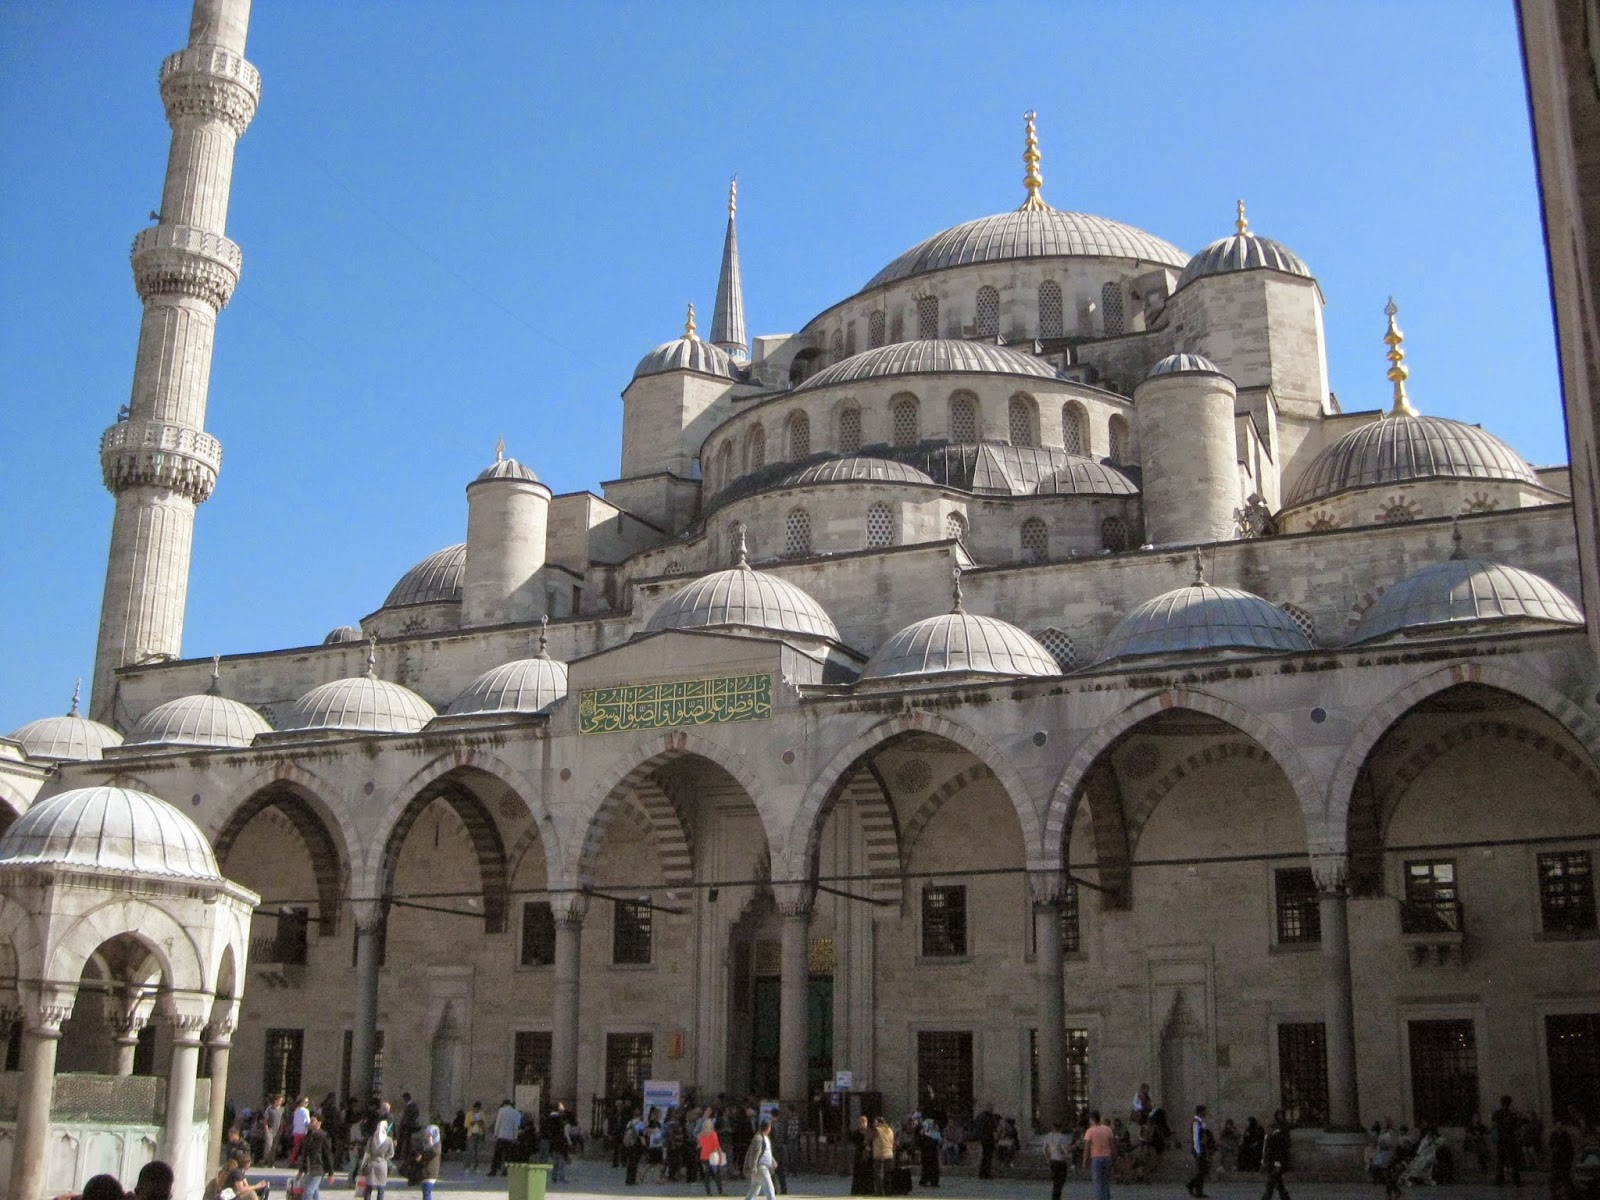 Istanbul - Visitors can only enter the Blue Mosque after prayer is finished